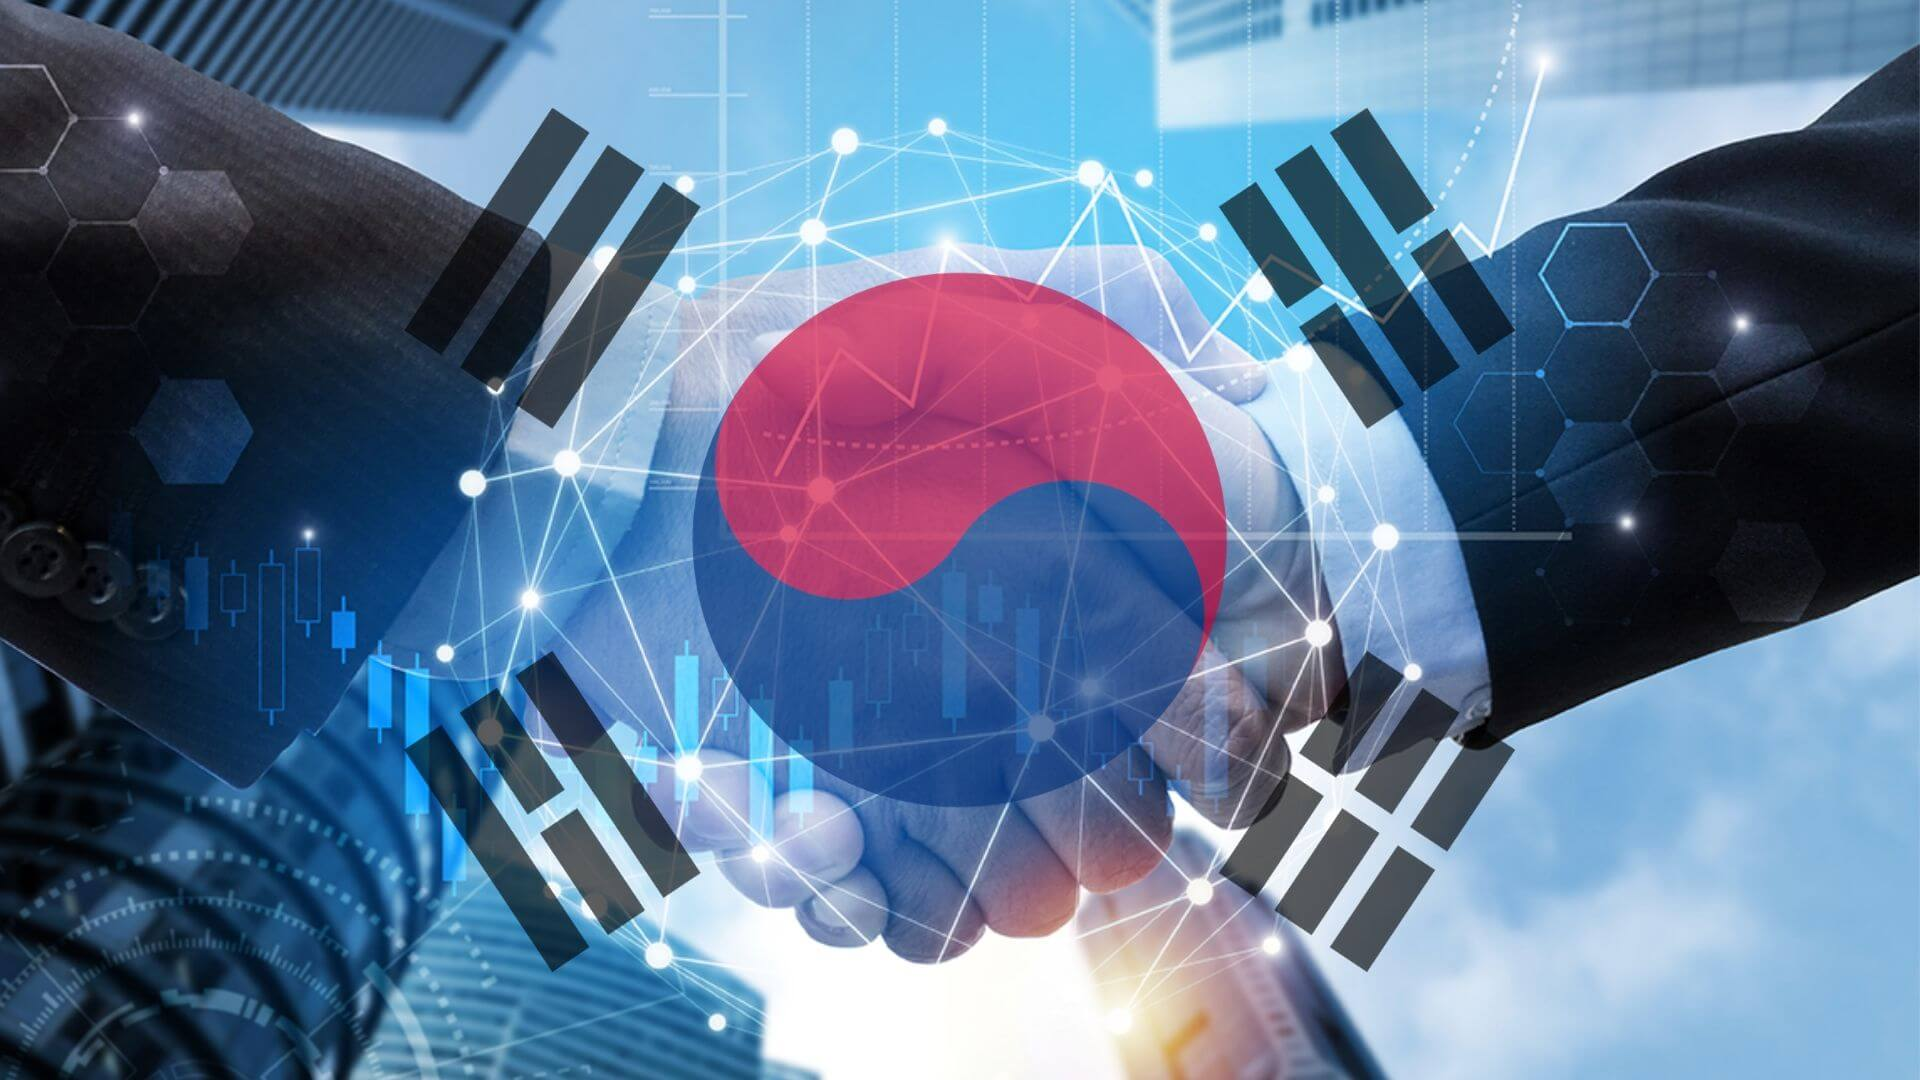 South Korean Shares End Higher on Positive Chinese Factory Activity Data